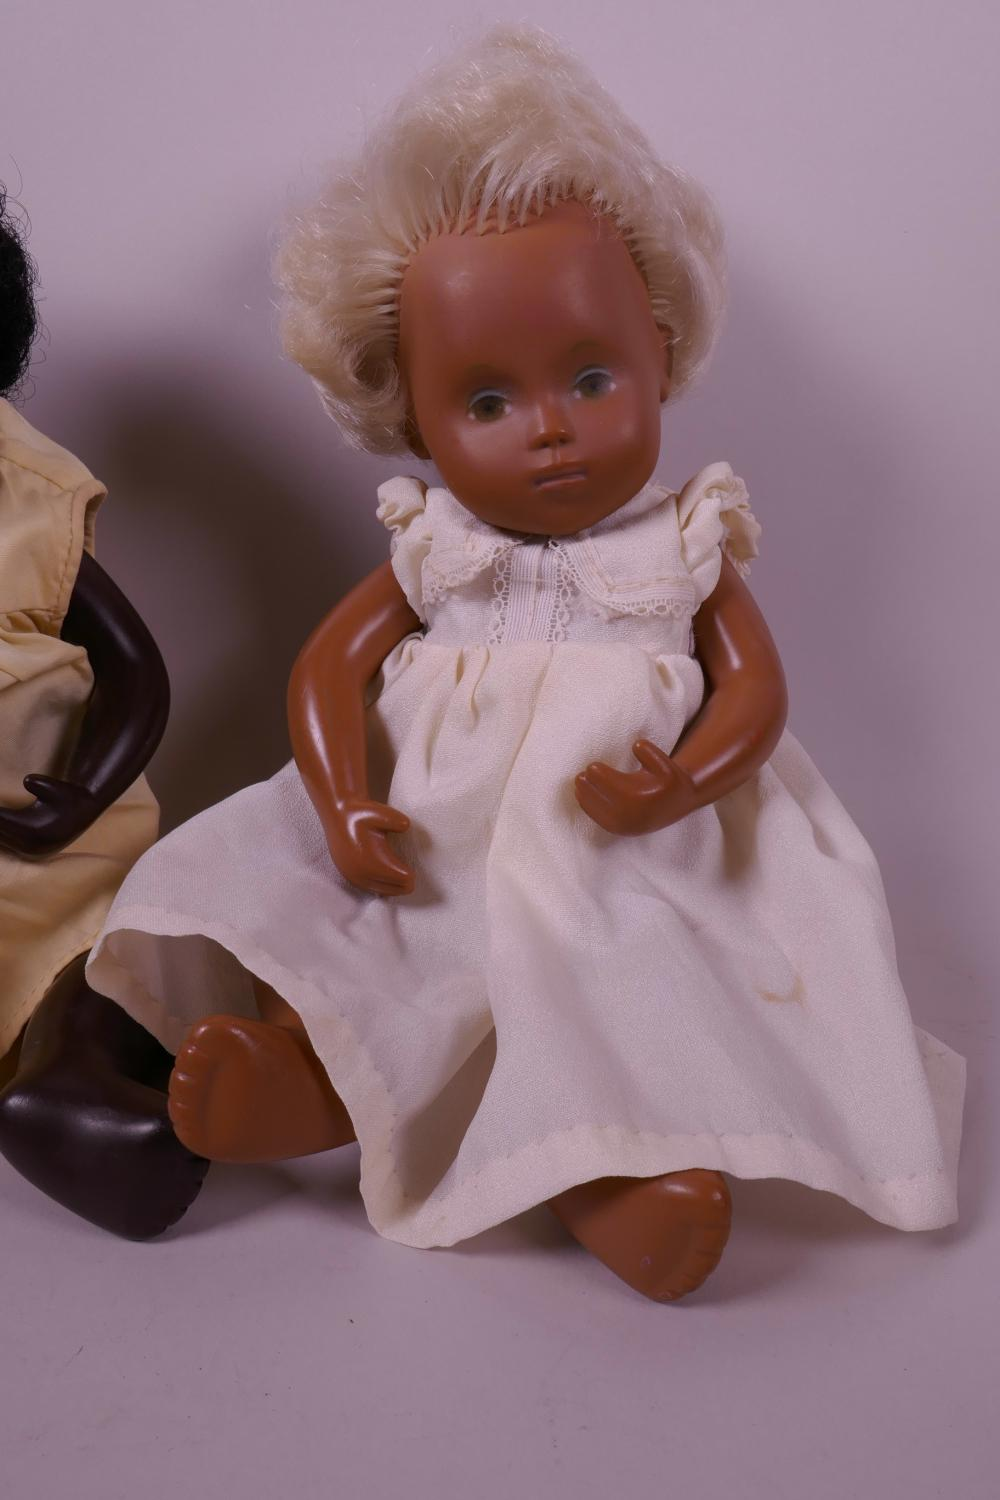 Three Sasha dolls including a black baby doll with pink lips, blue